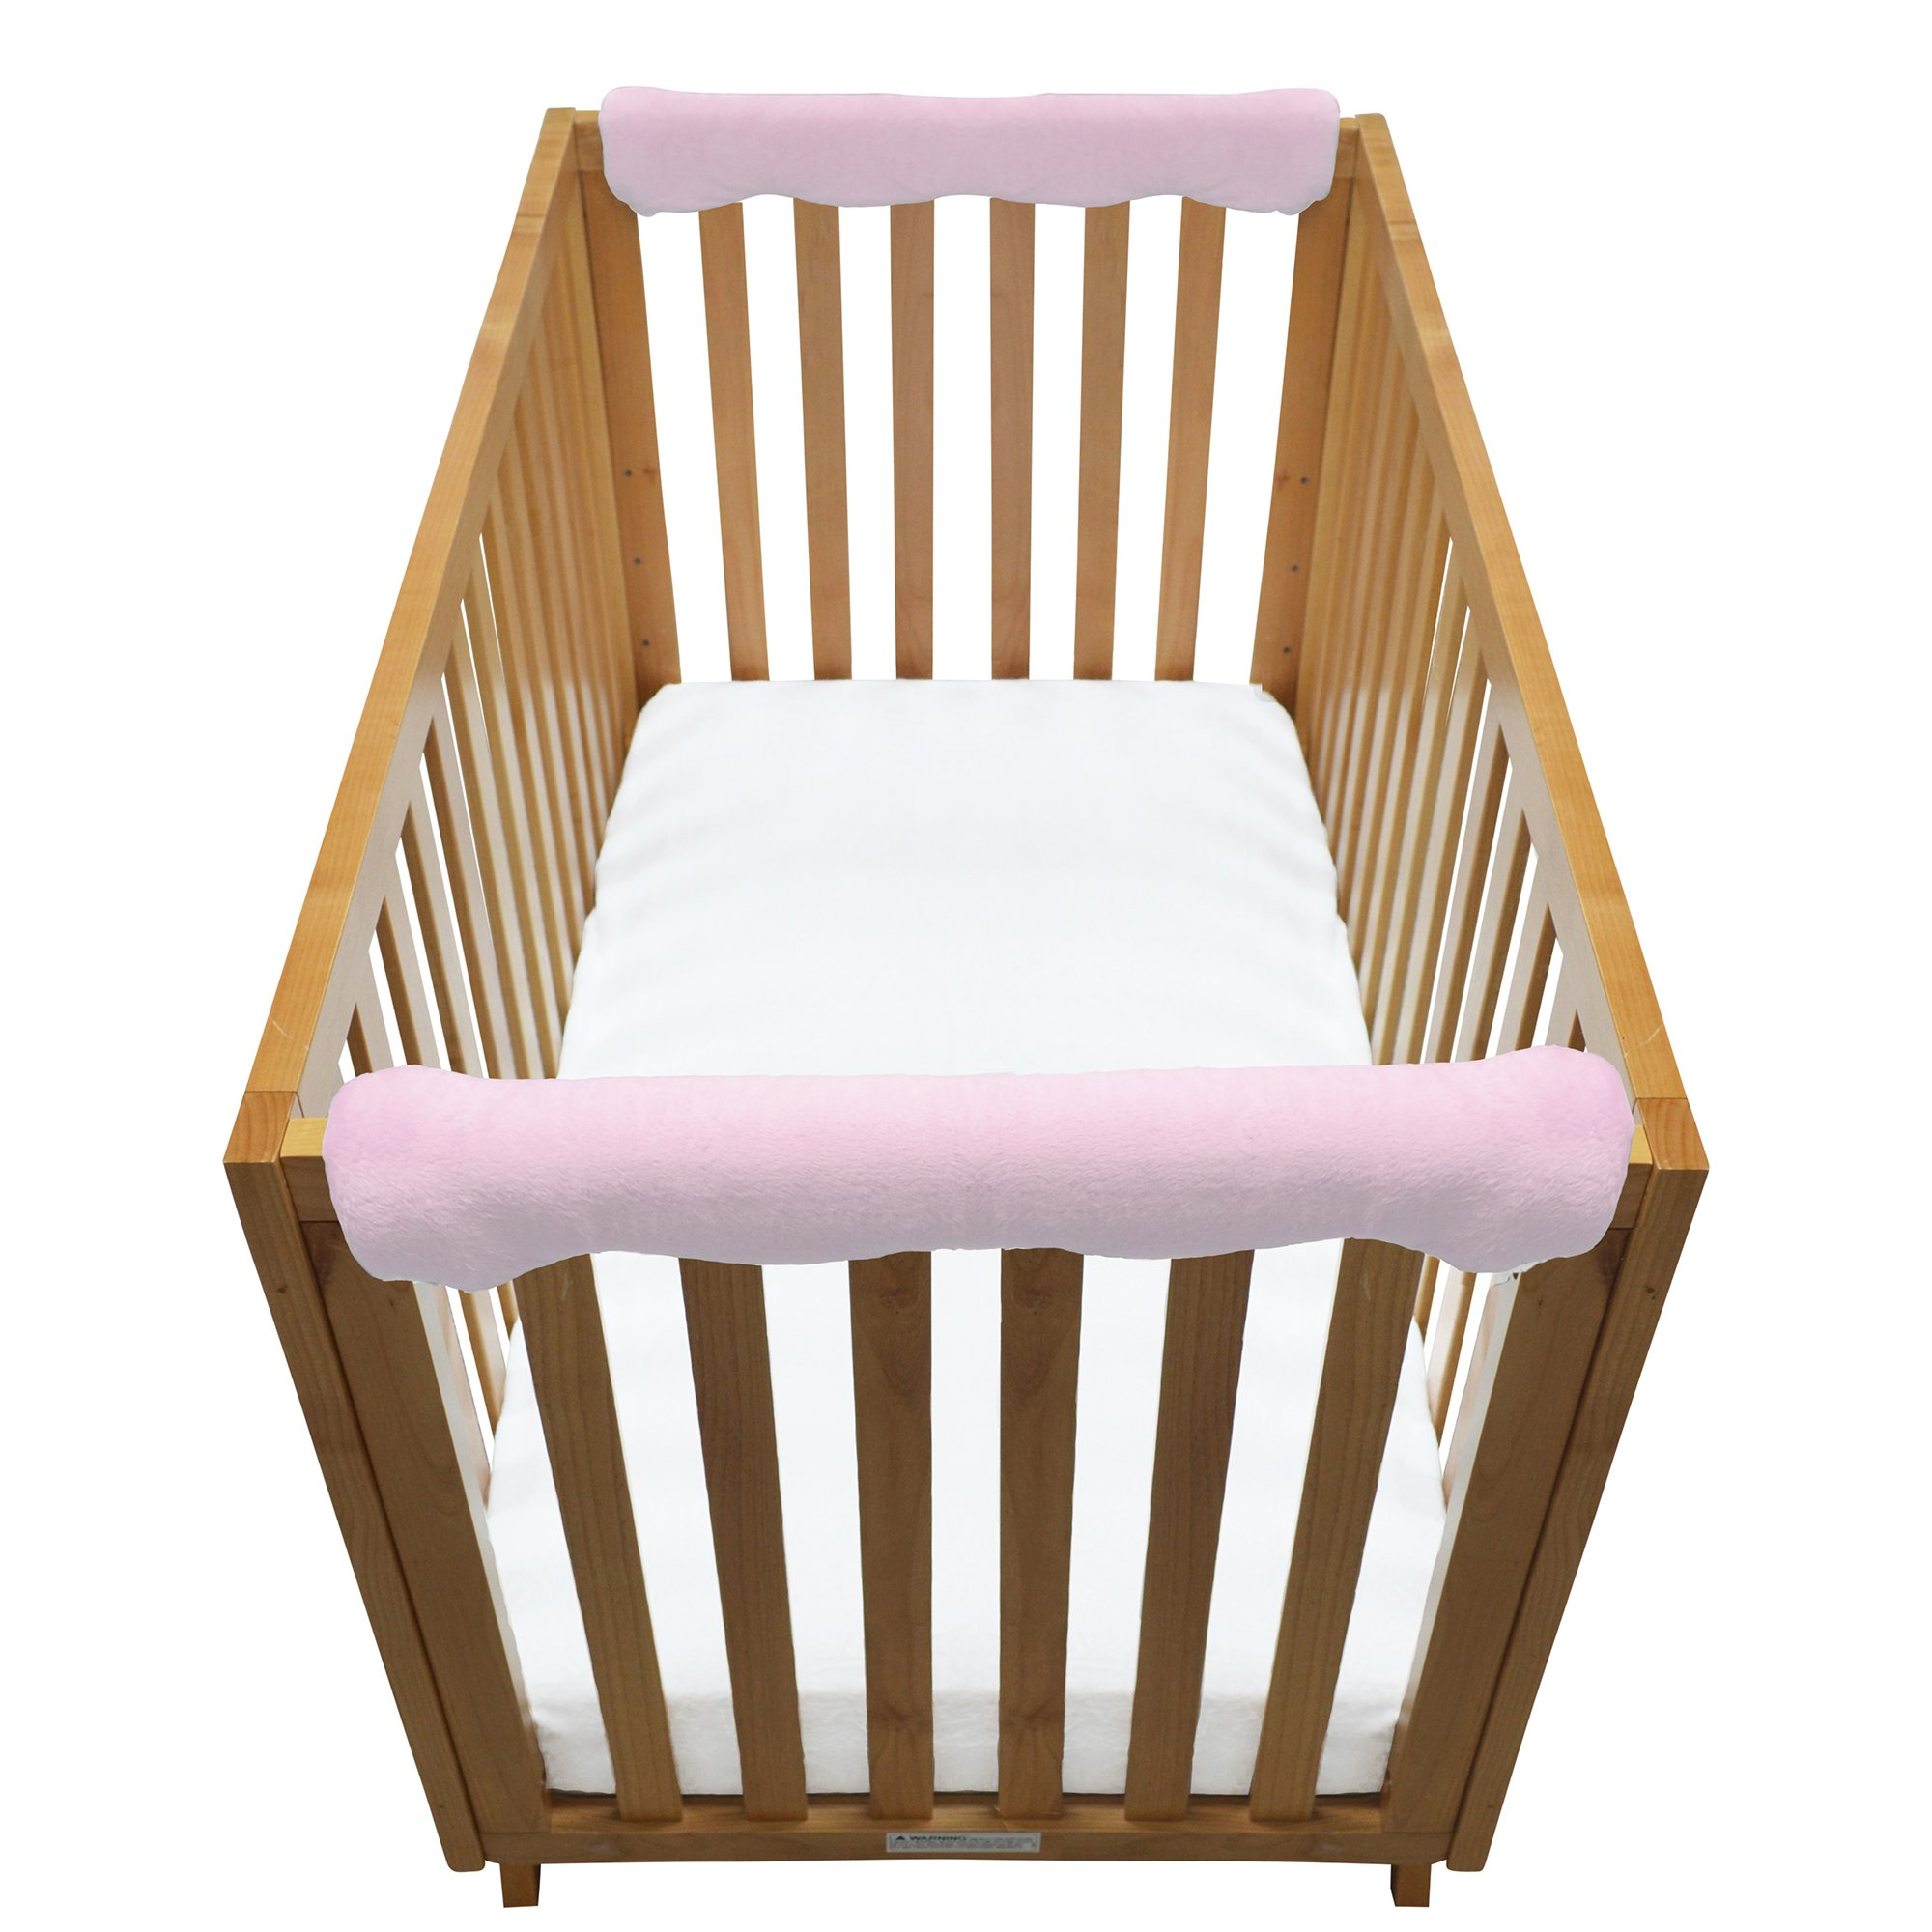 Go Mama Go Pure Safety Luxurious Teething Guard Set, Pink Minky